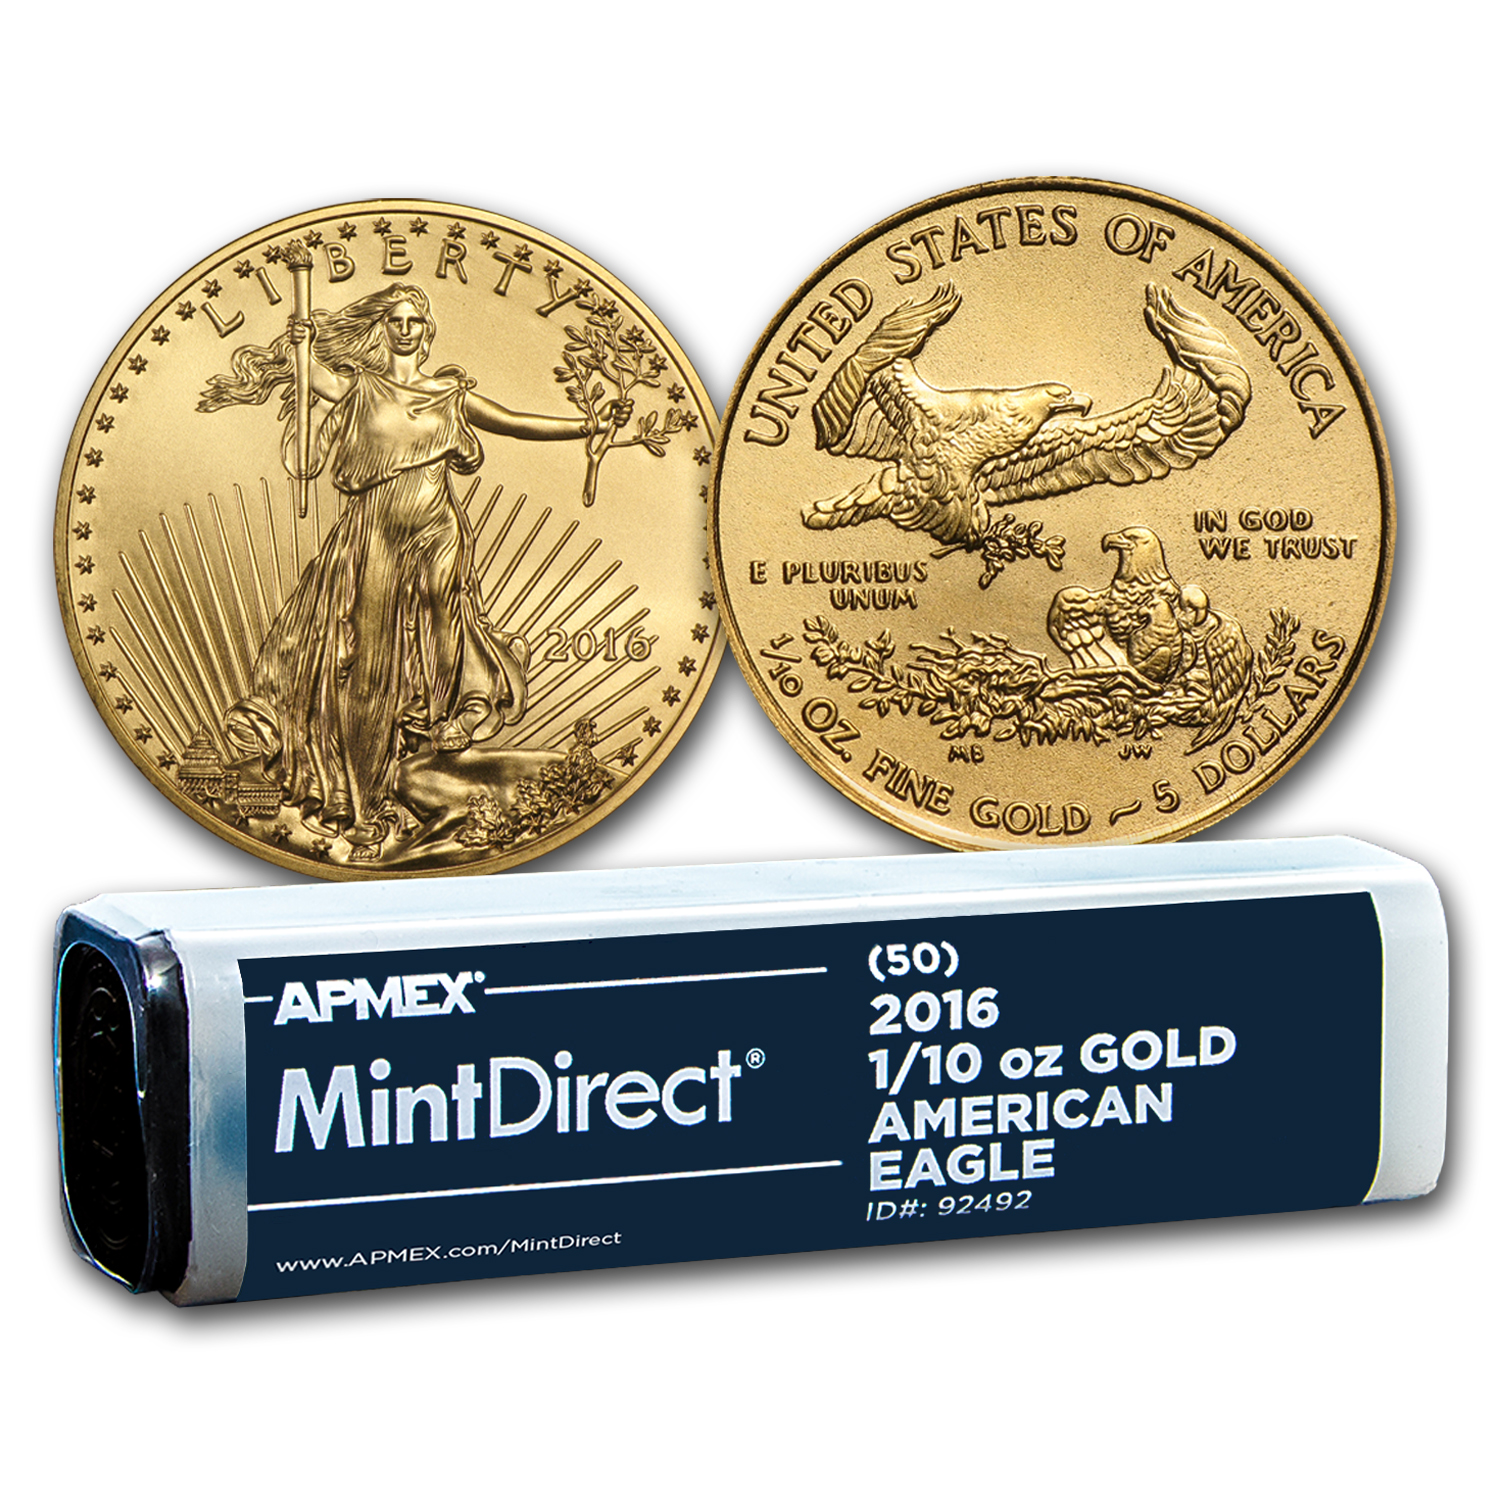 2016 1/10 oz Gold American Eagle (50-Coin MintDirect® Tube)